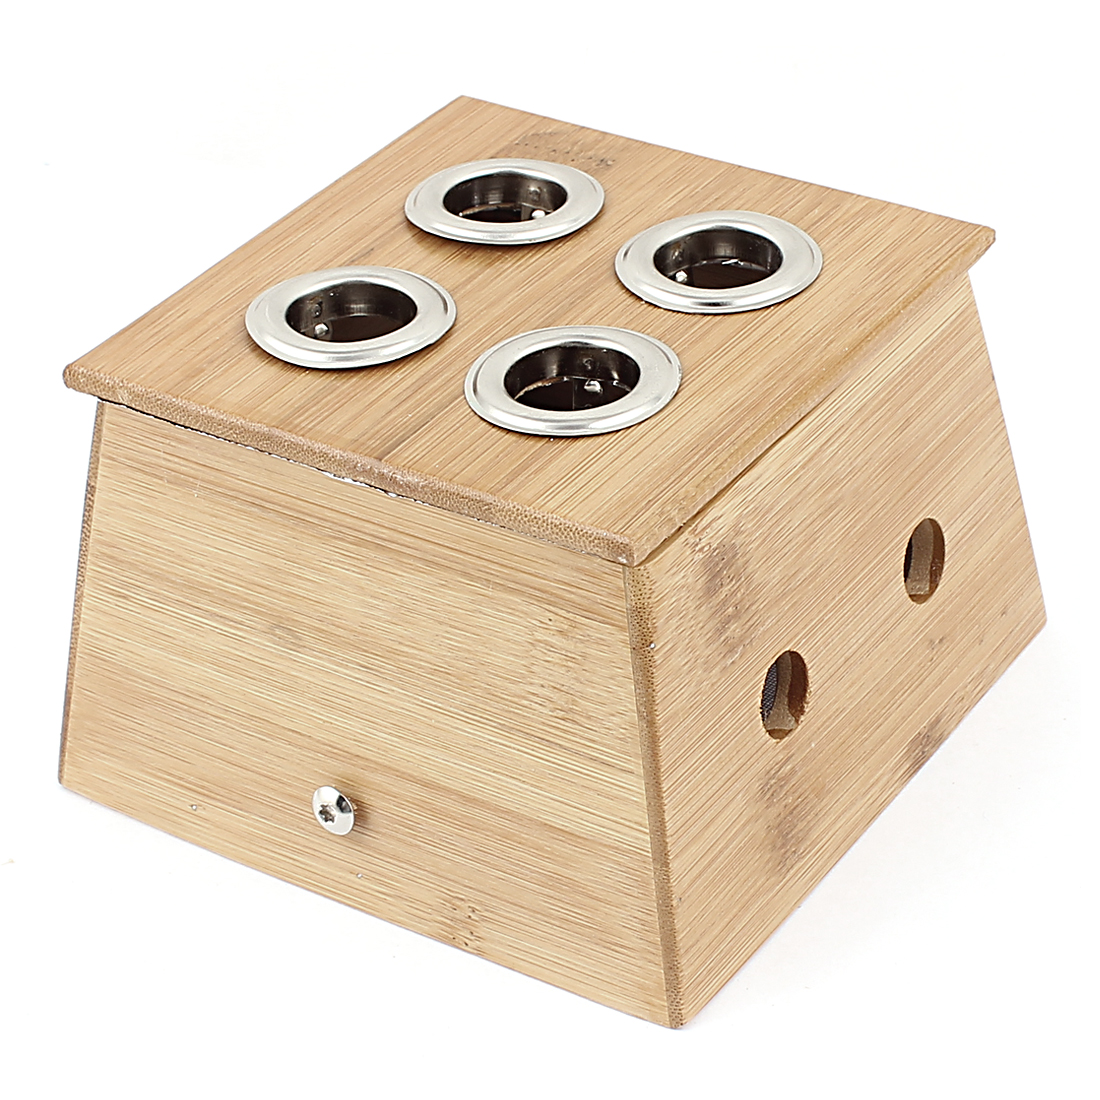 Four Holes Roll Holder Therapy Massage Bamboo Mild Moxibustion Box